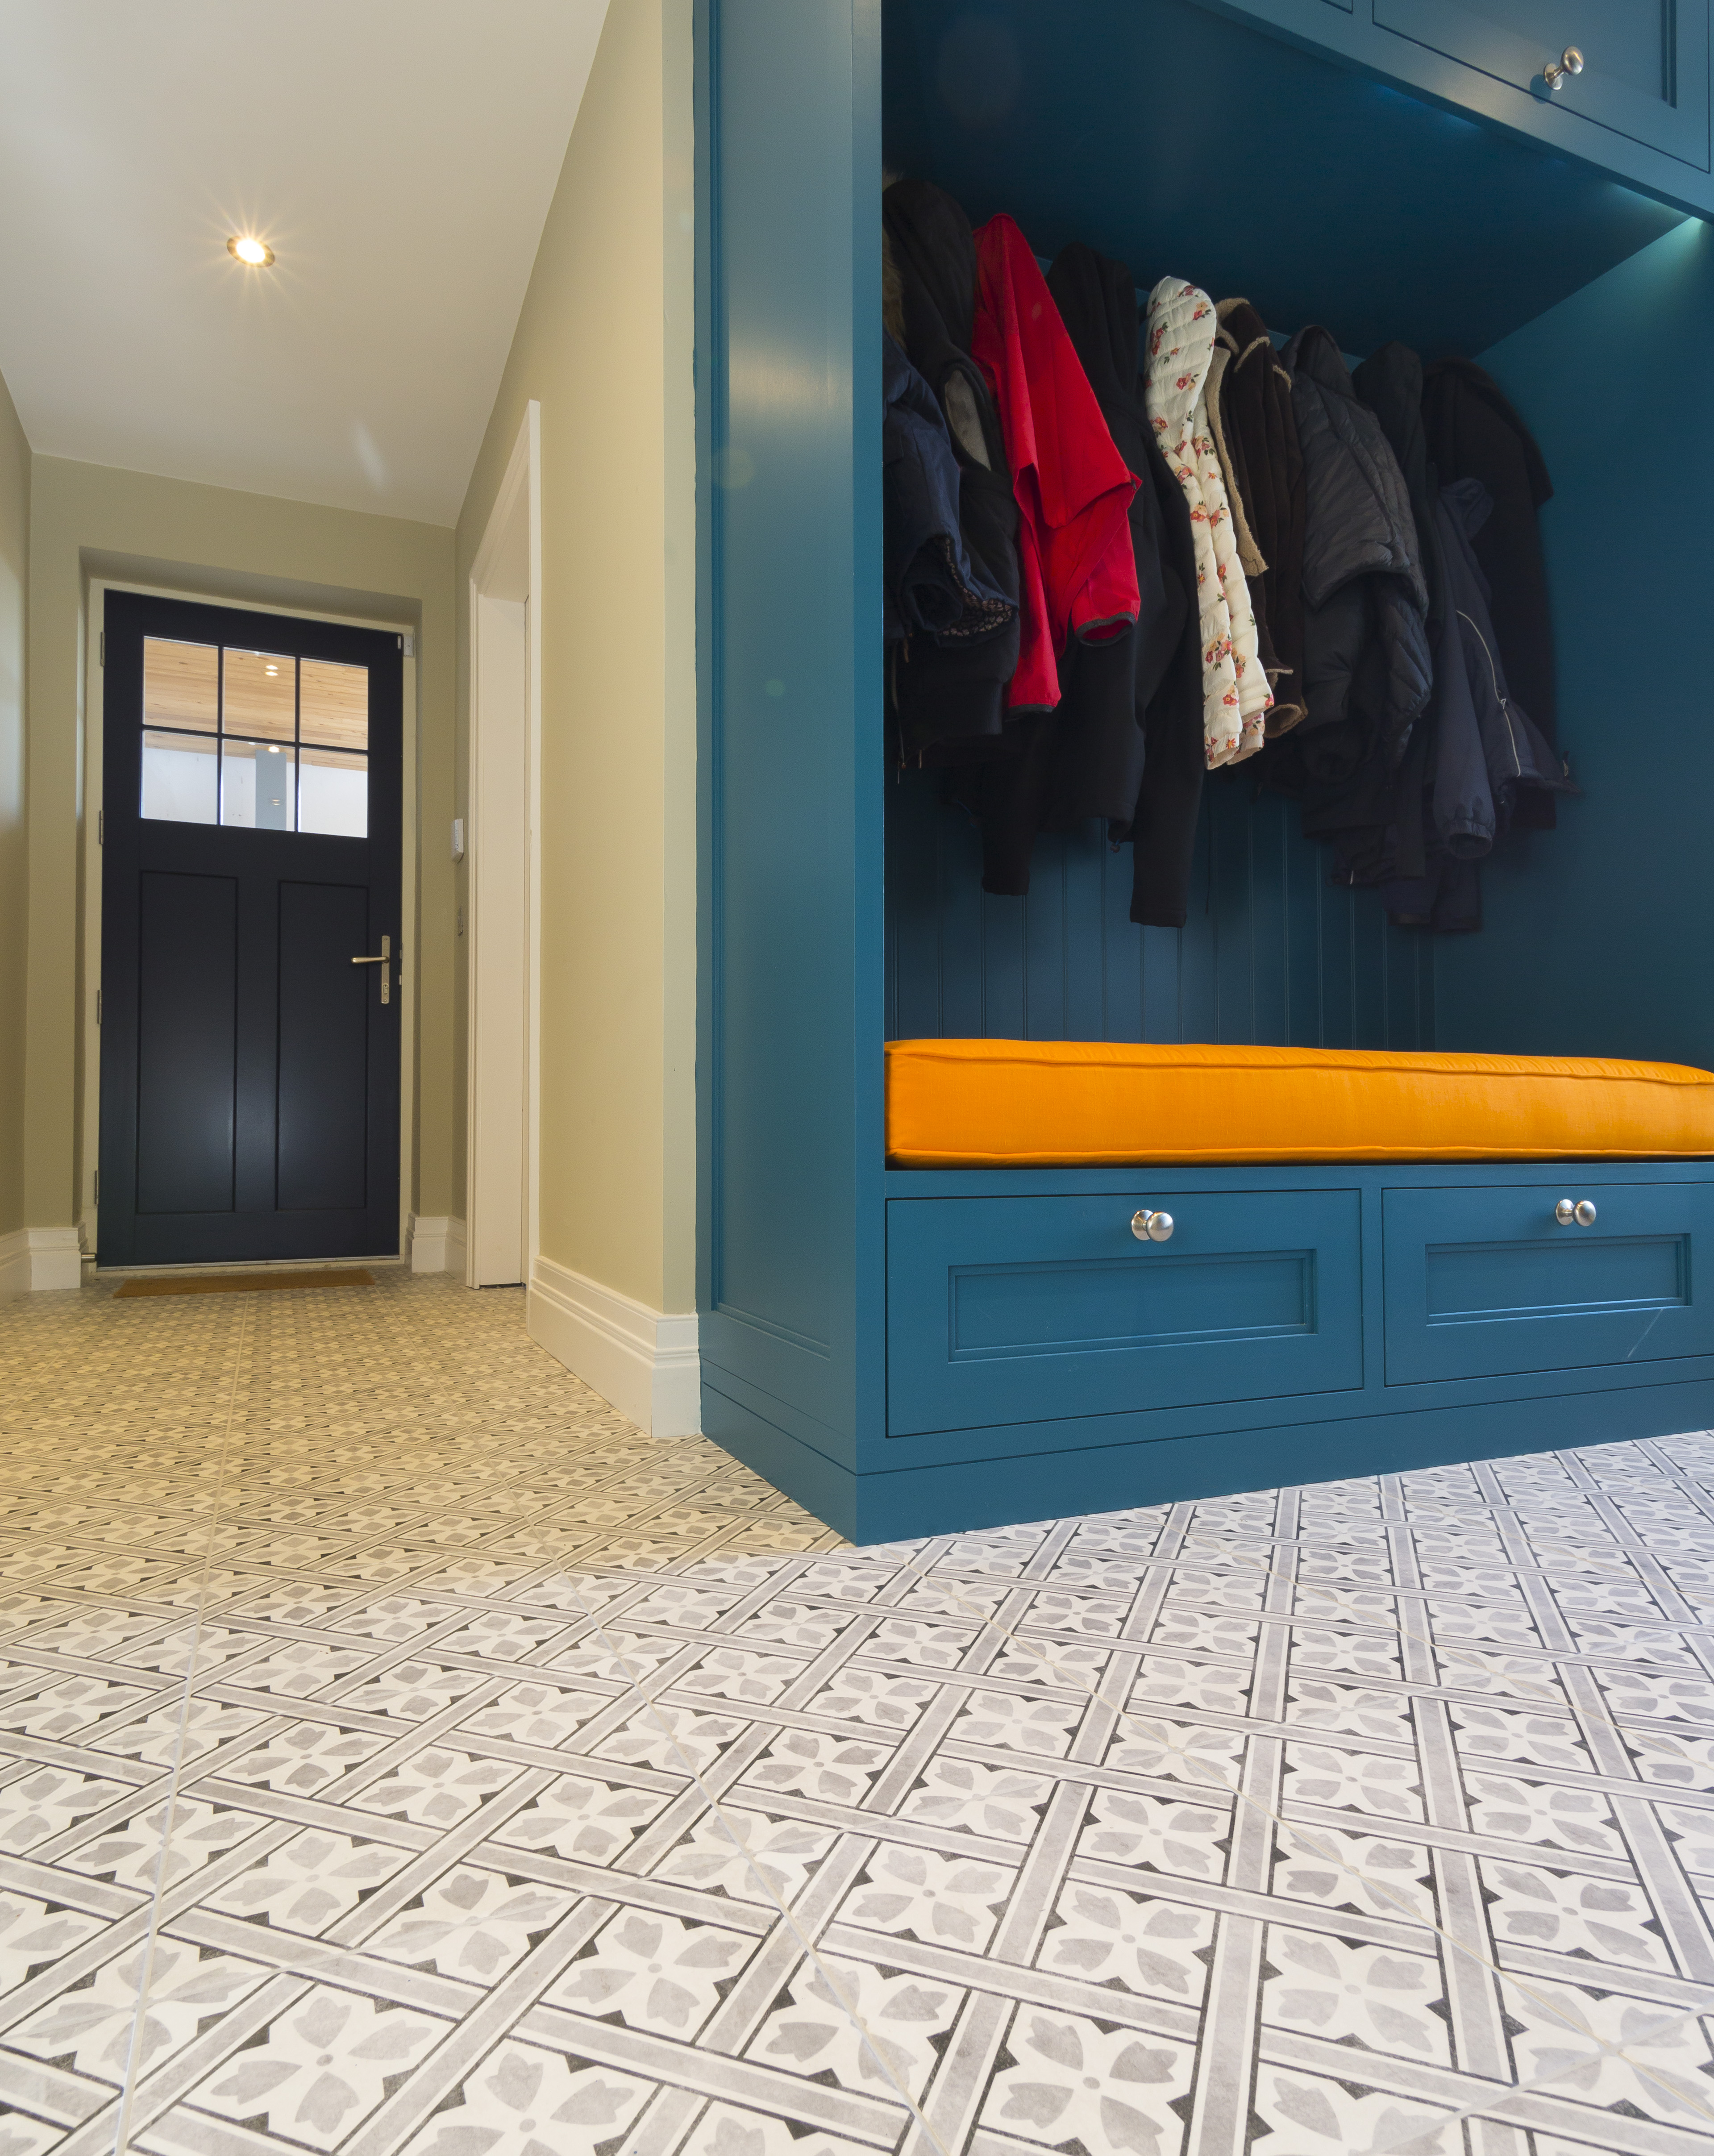 Planning a tile revamp? These 4 Dublin suppliers can help ...